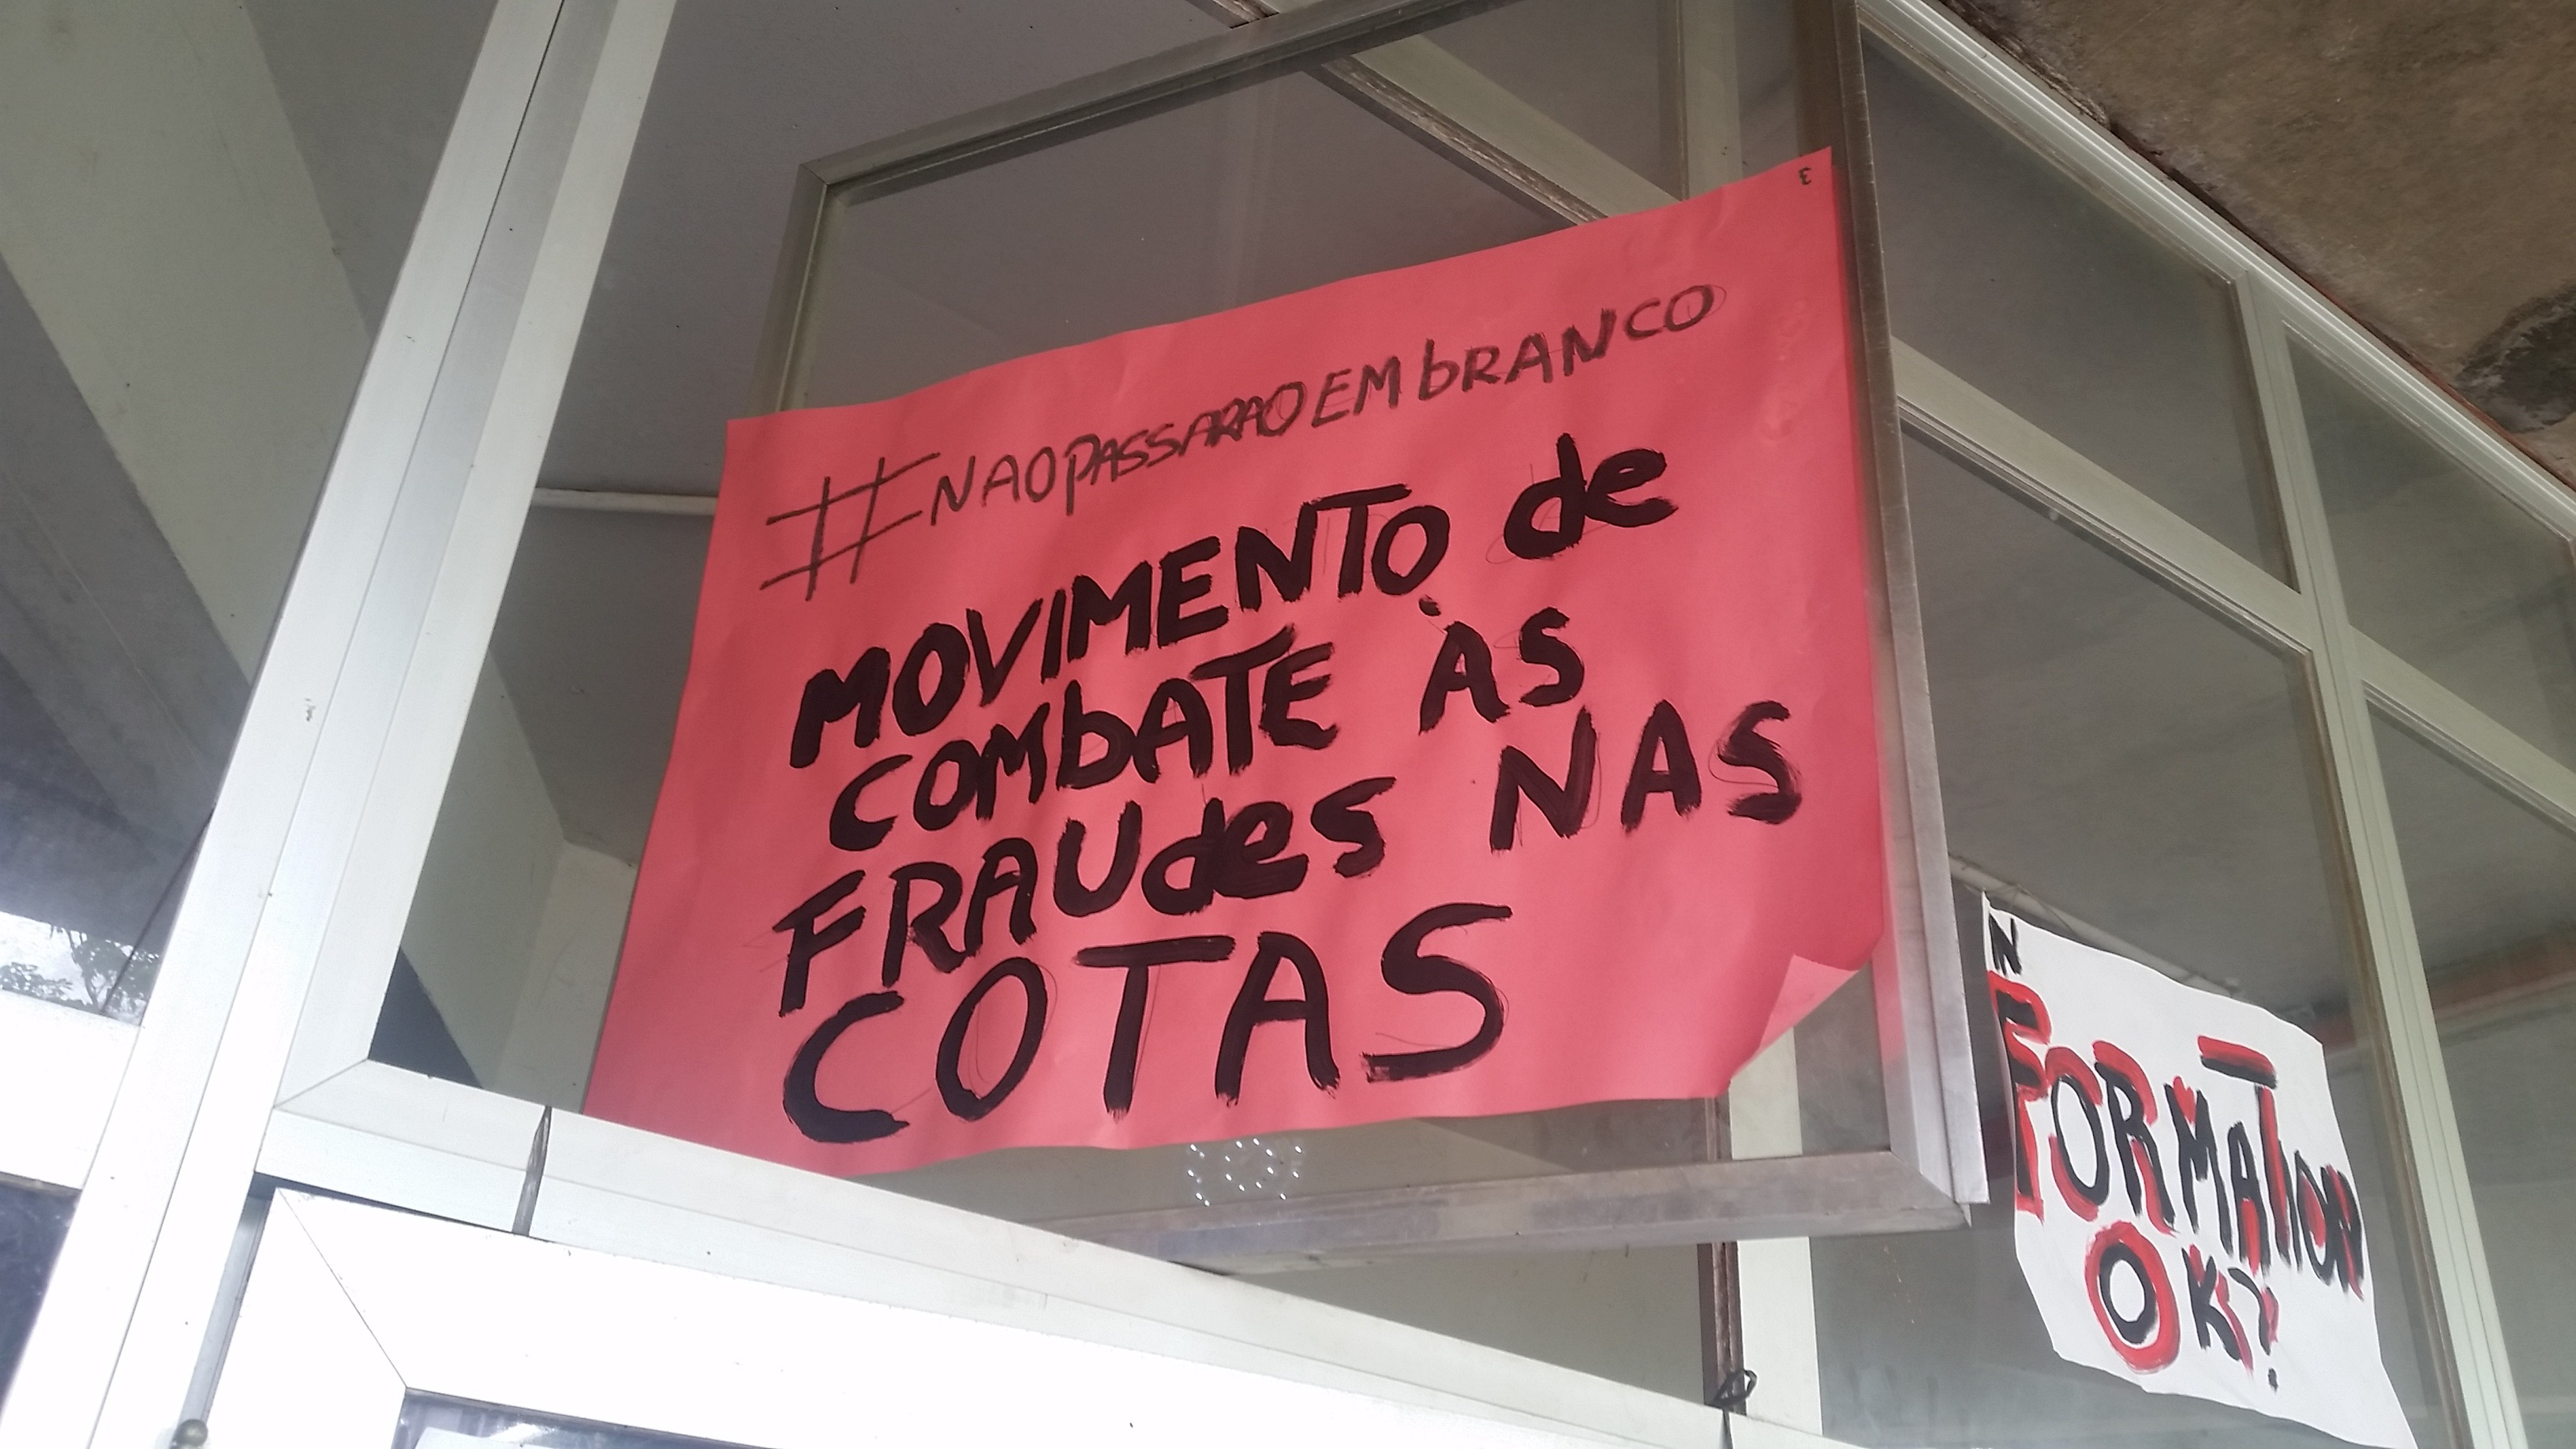 """A sign hung outside the QuIlombo reads """"Movement to combat fraud in the quotas"""" (Photo by Kristian Davis Bailey)"""